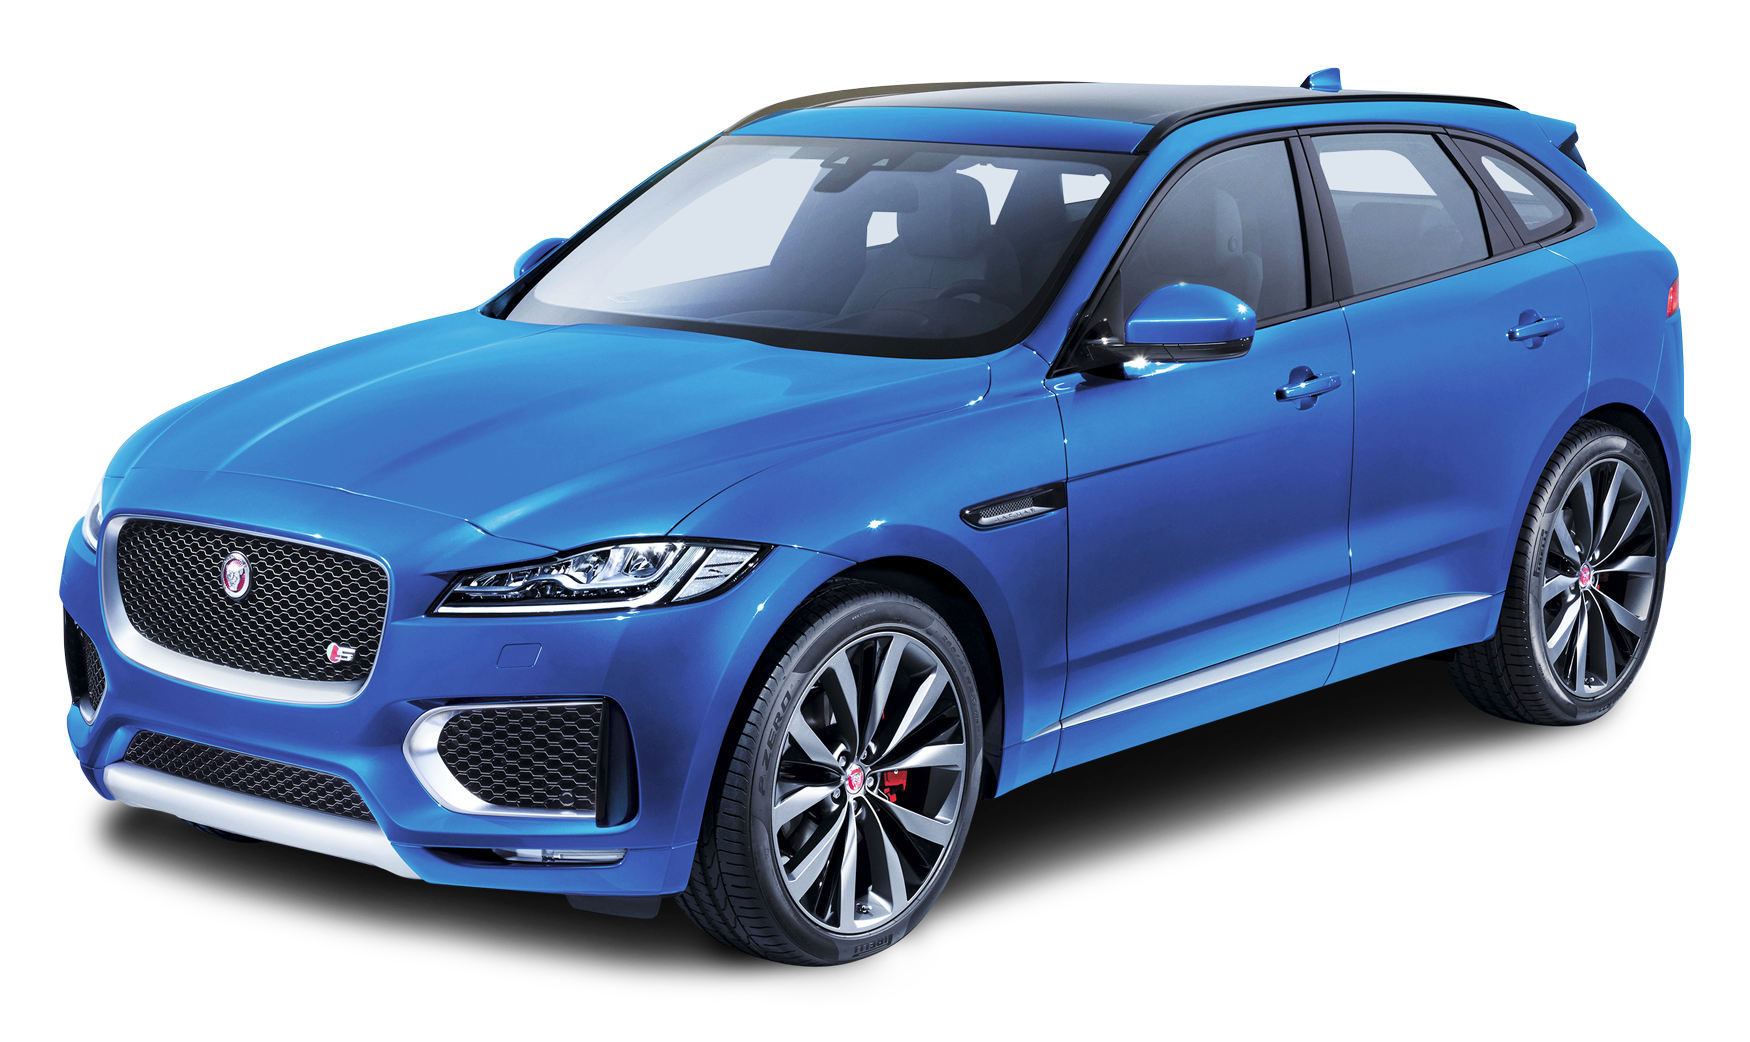 Blue Jaguar F PACE Side View Car